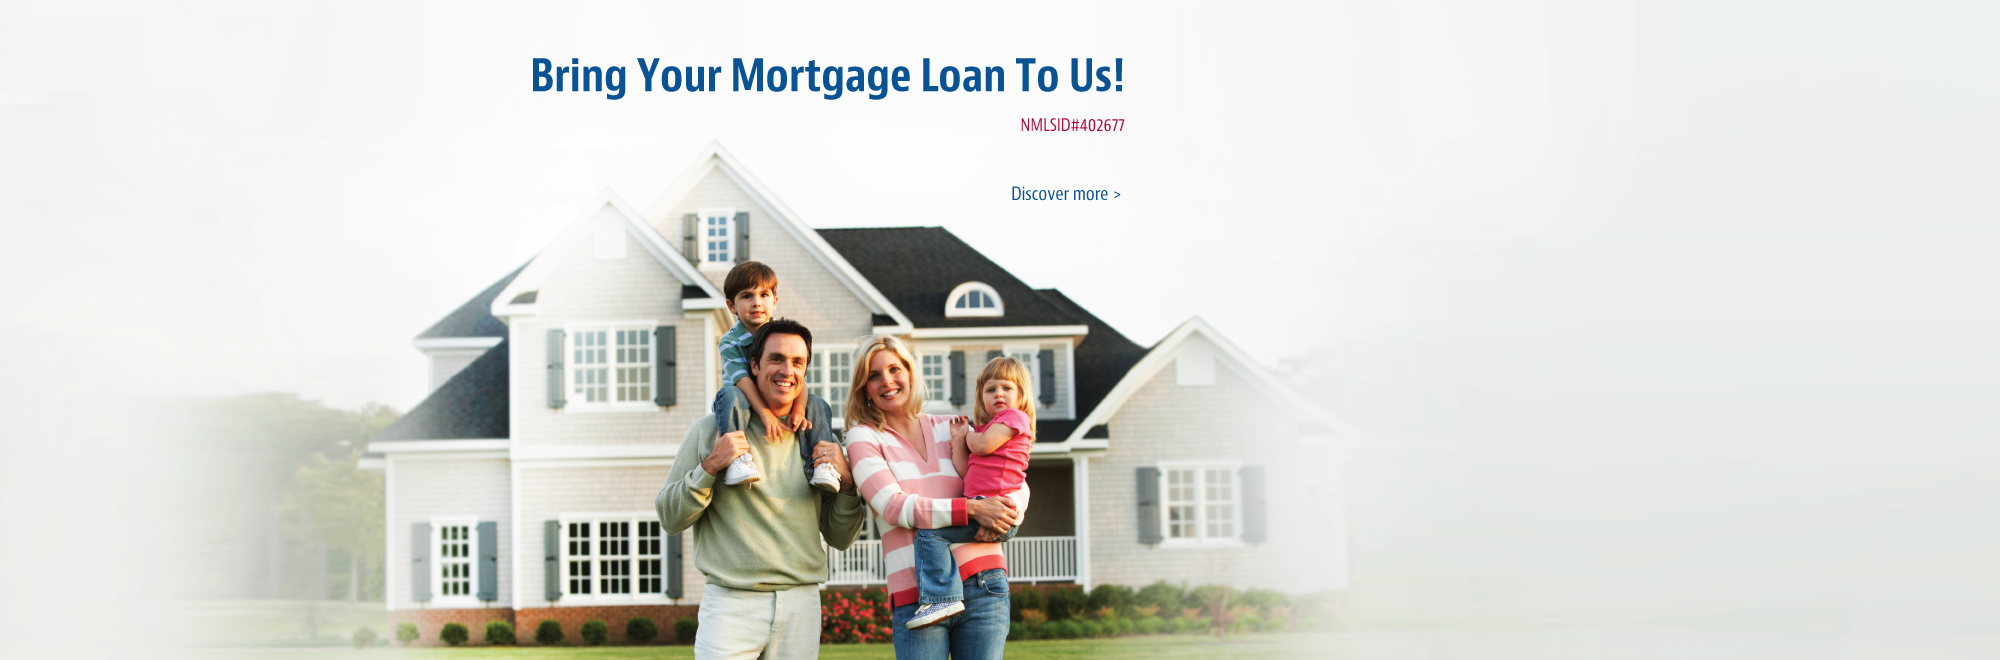 Bring Your Mortgage Loan To Us!